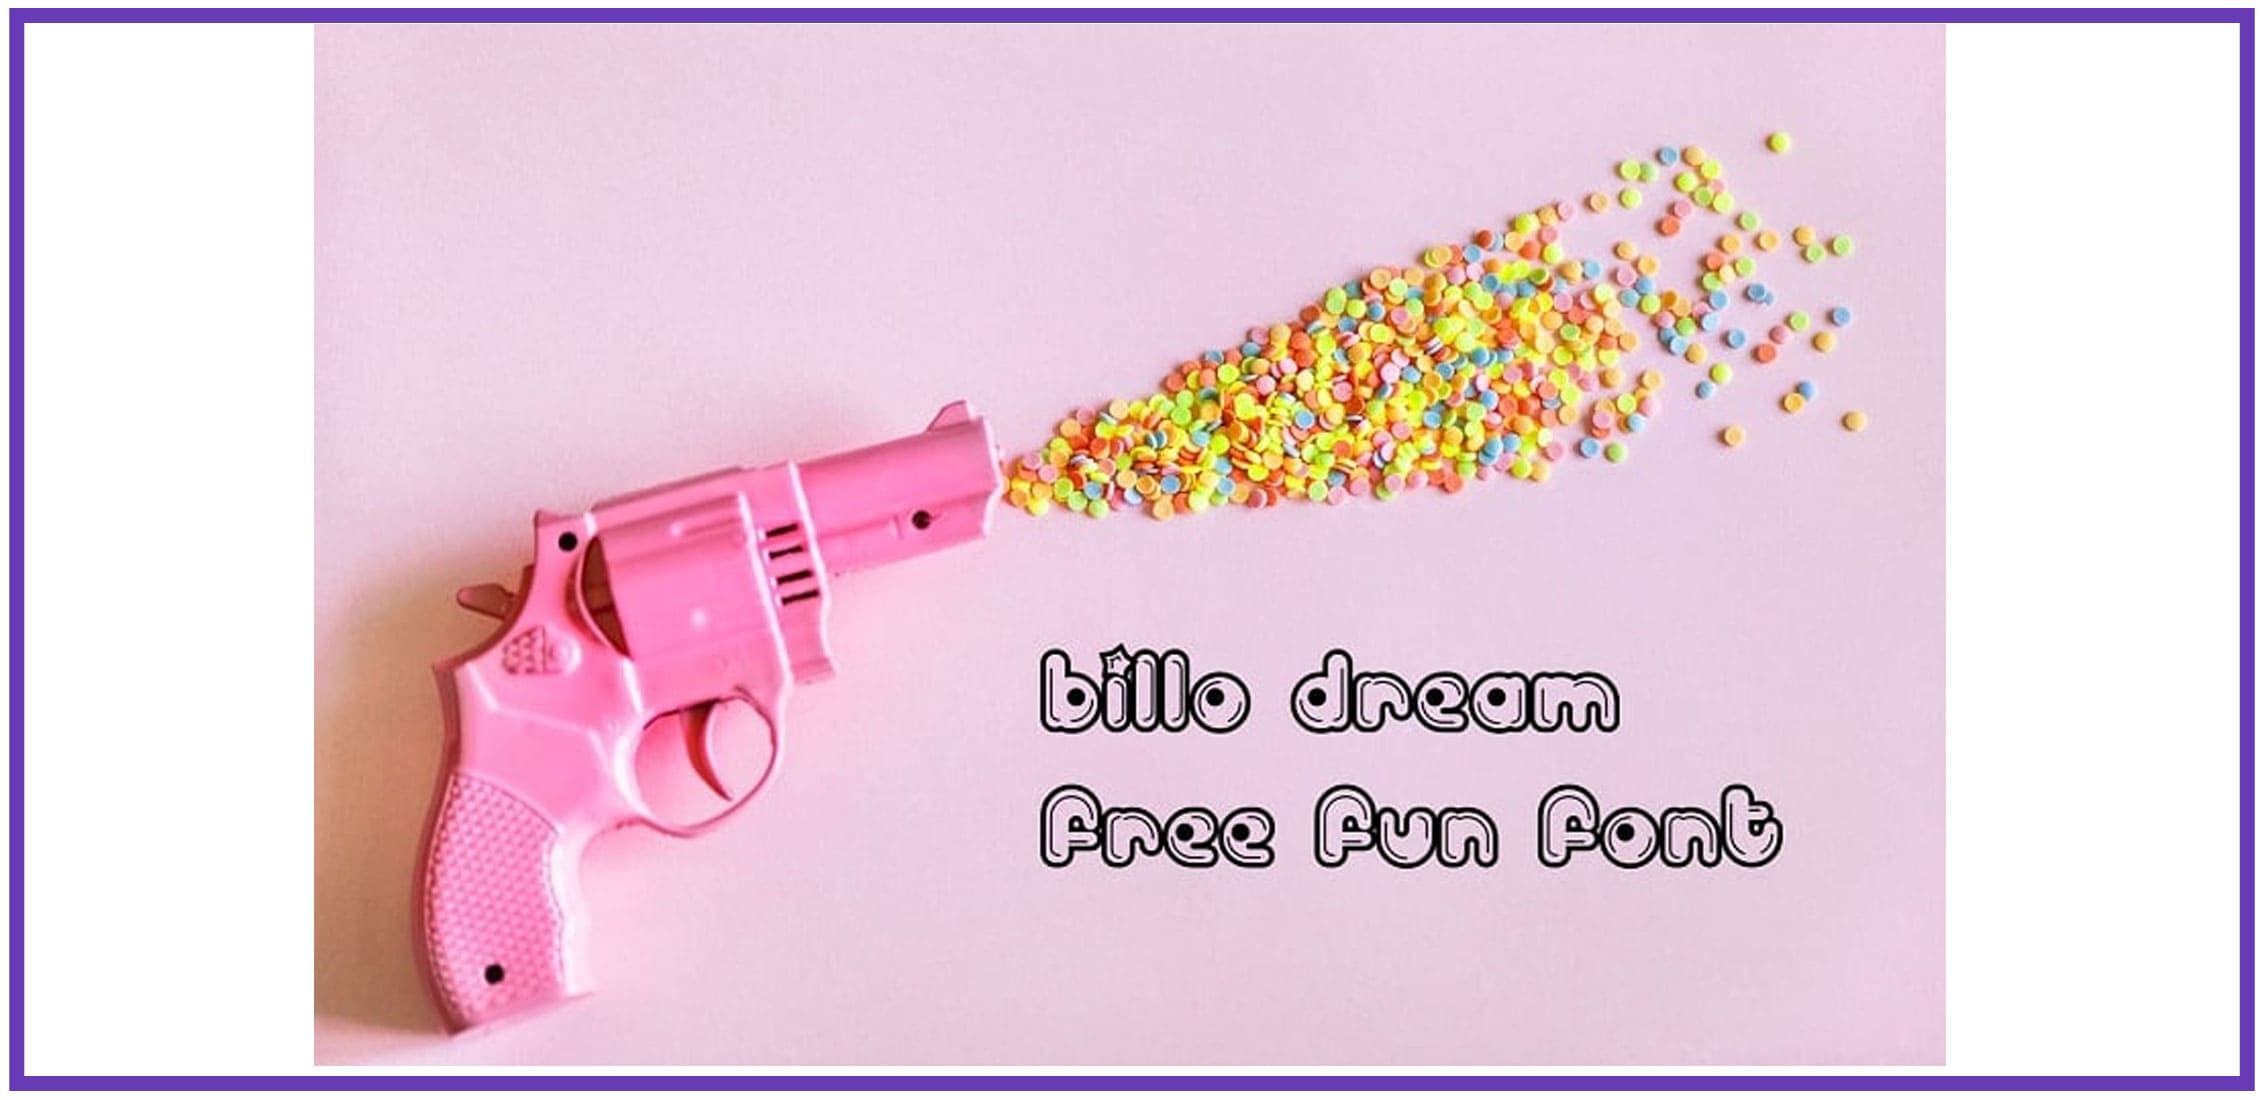 A toy pink revolver with confetti and display fun font.